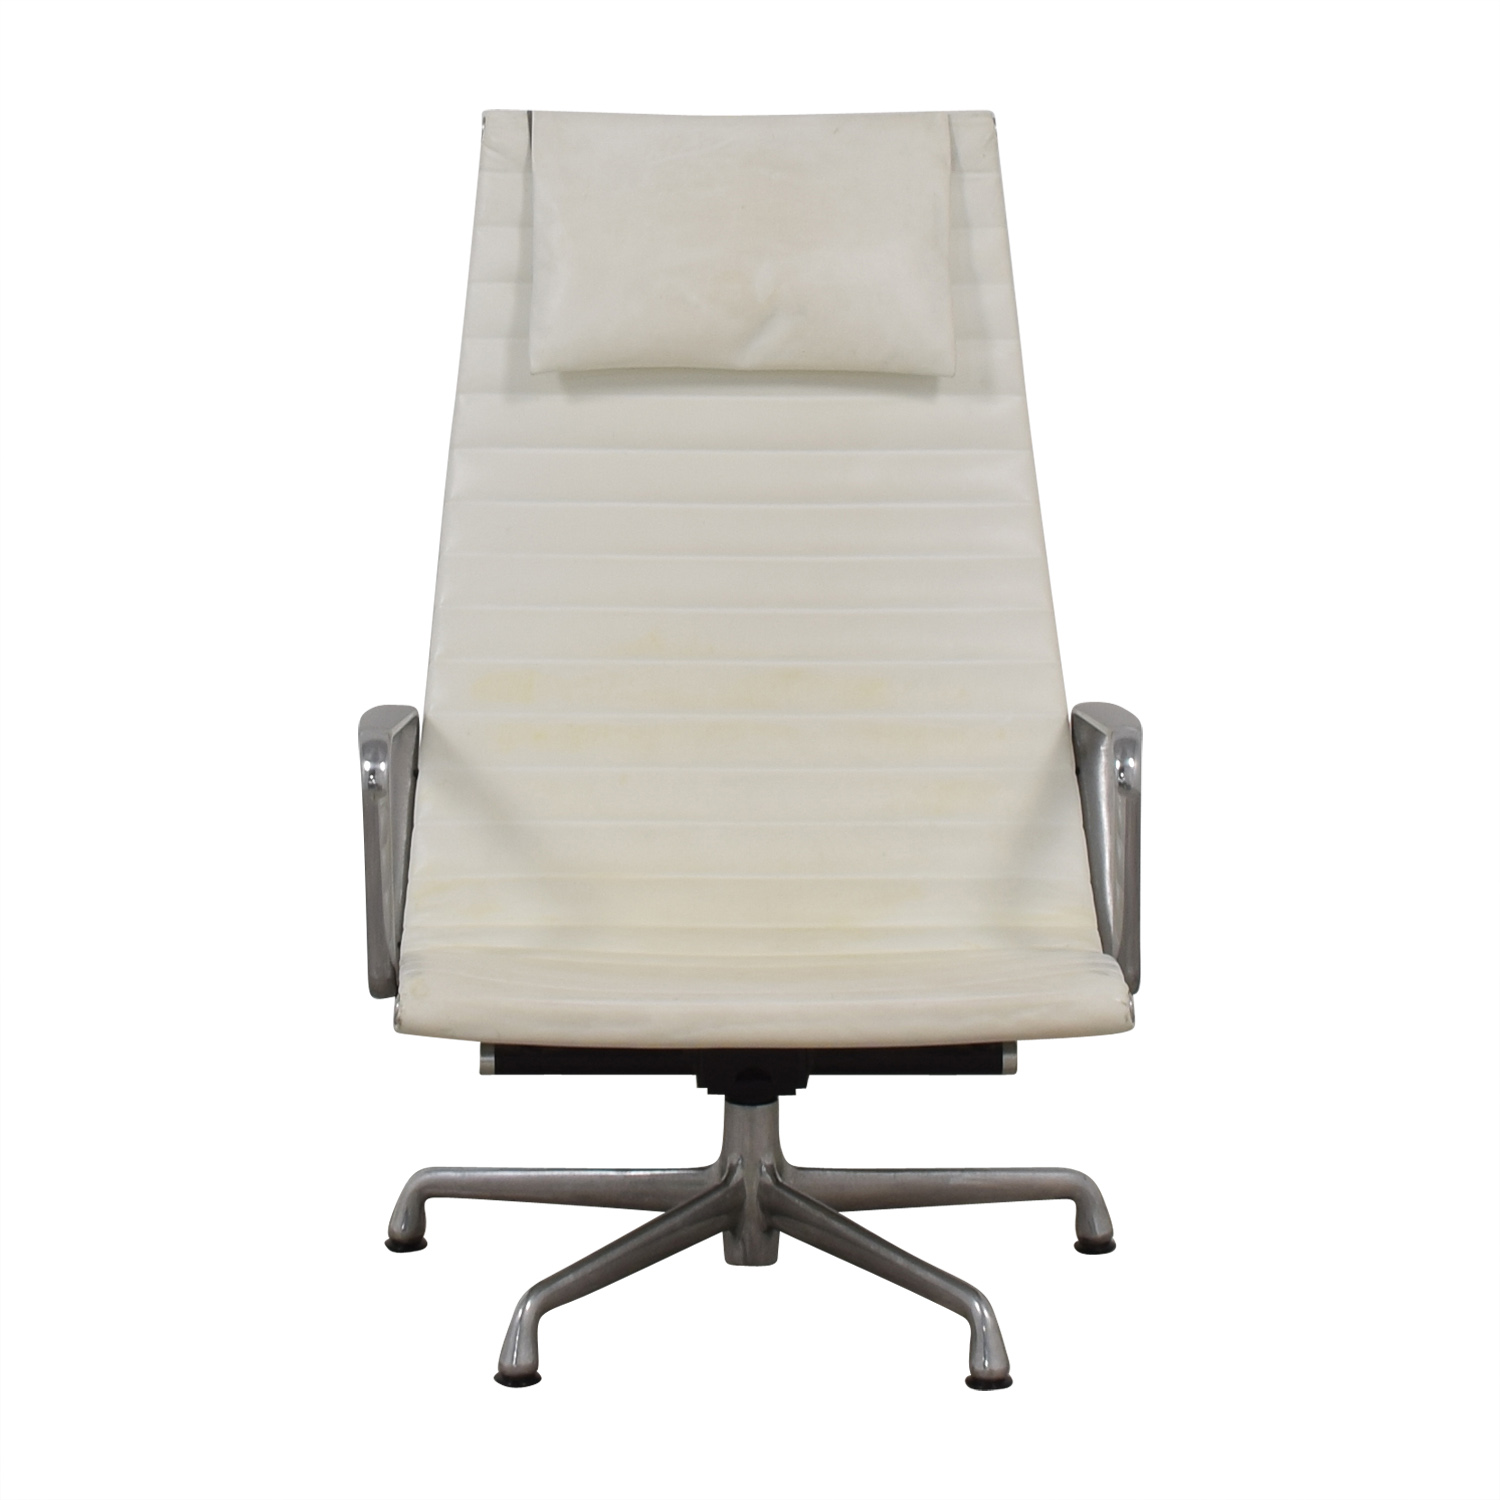 Herman Miller Herman Miller Eames Aluminum Group White Lounge Chair price